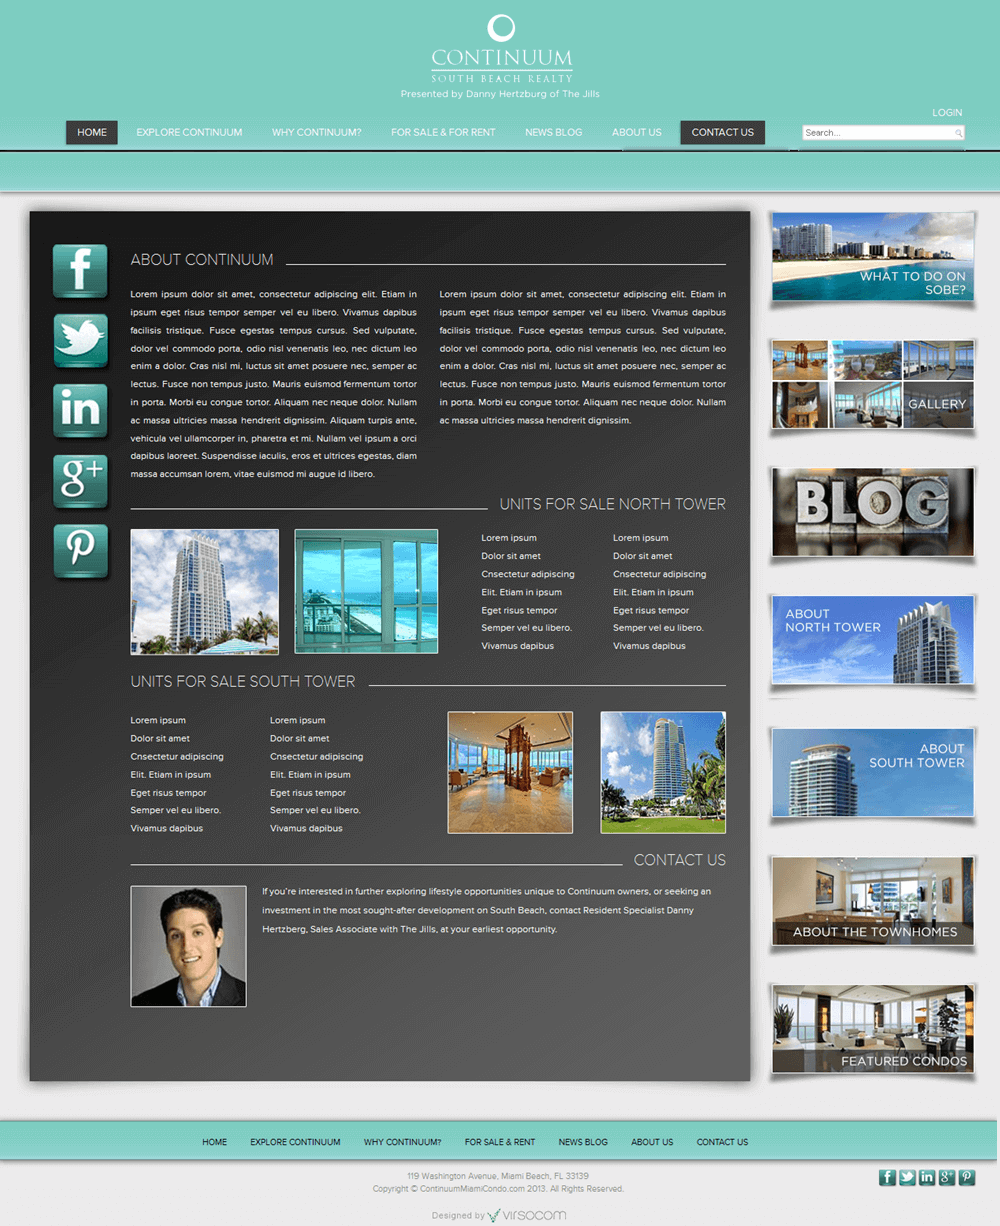 Website for Real Estate 'CSBR' Using PHP - Property for Sell & Rent